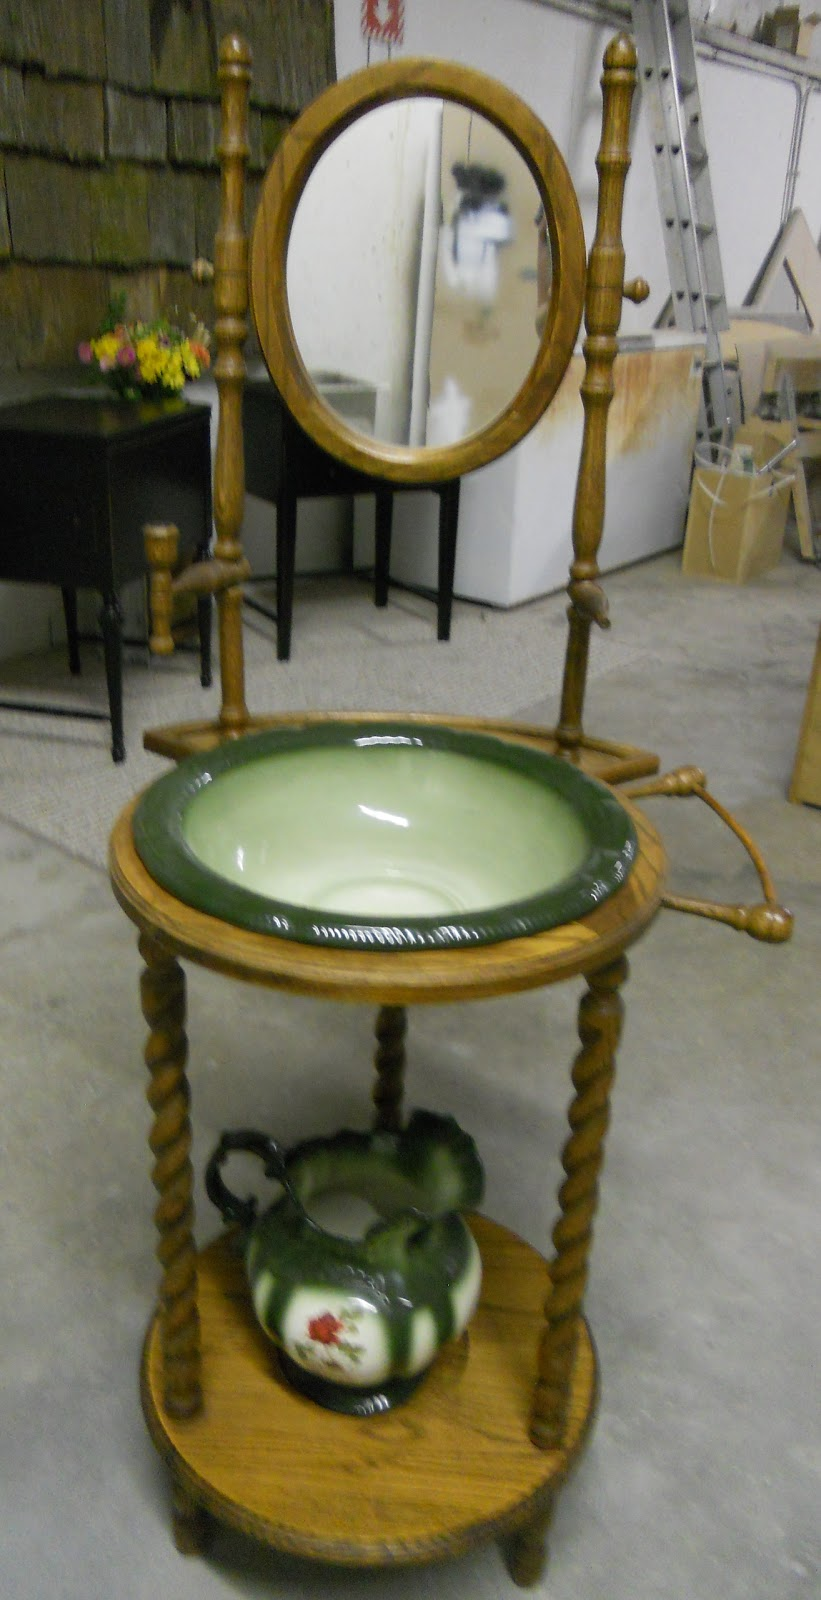 Createinspire Reproduction Of Antique Wash Basin